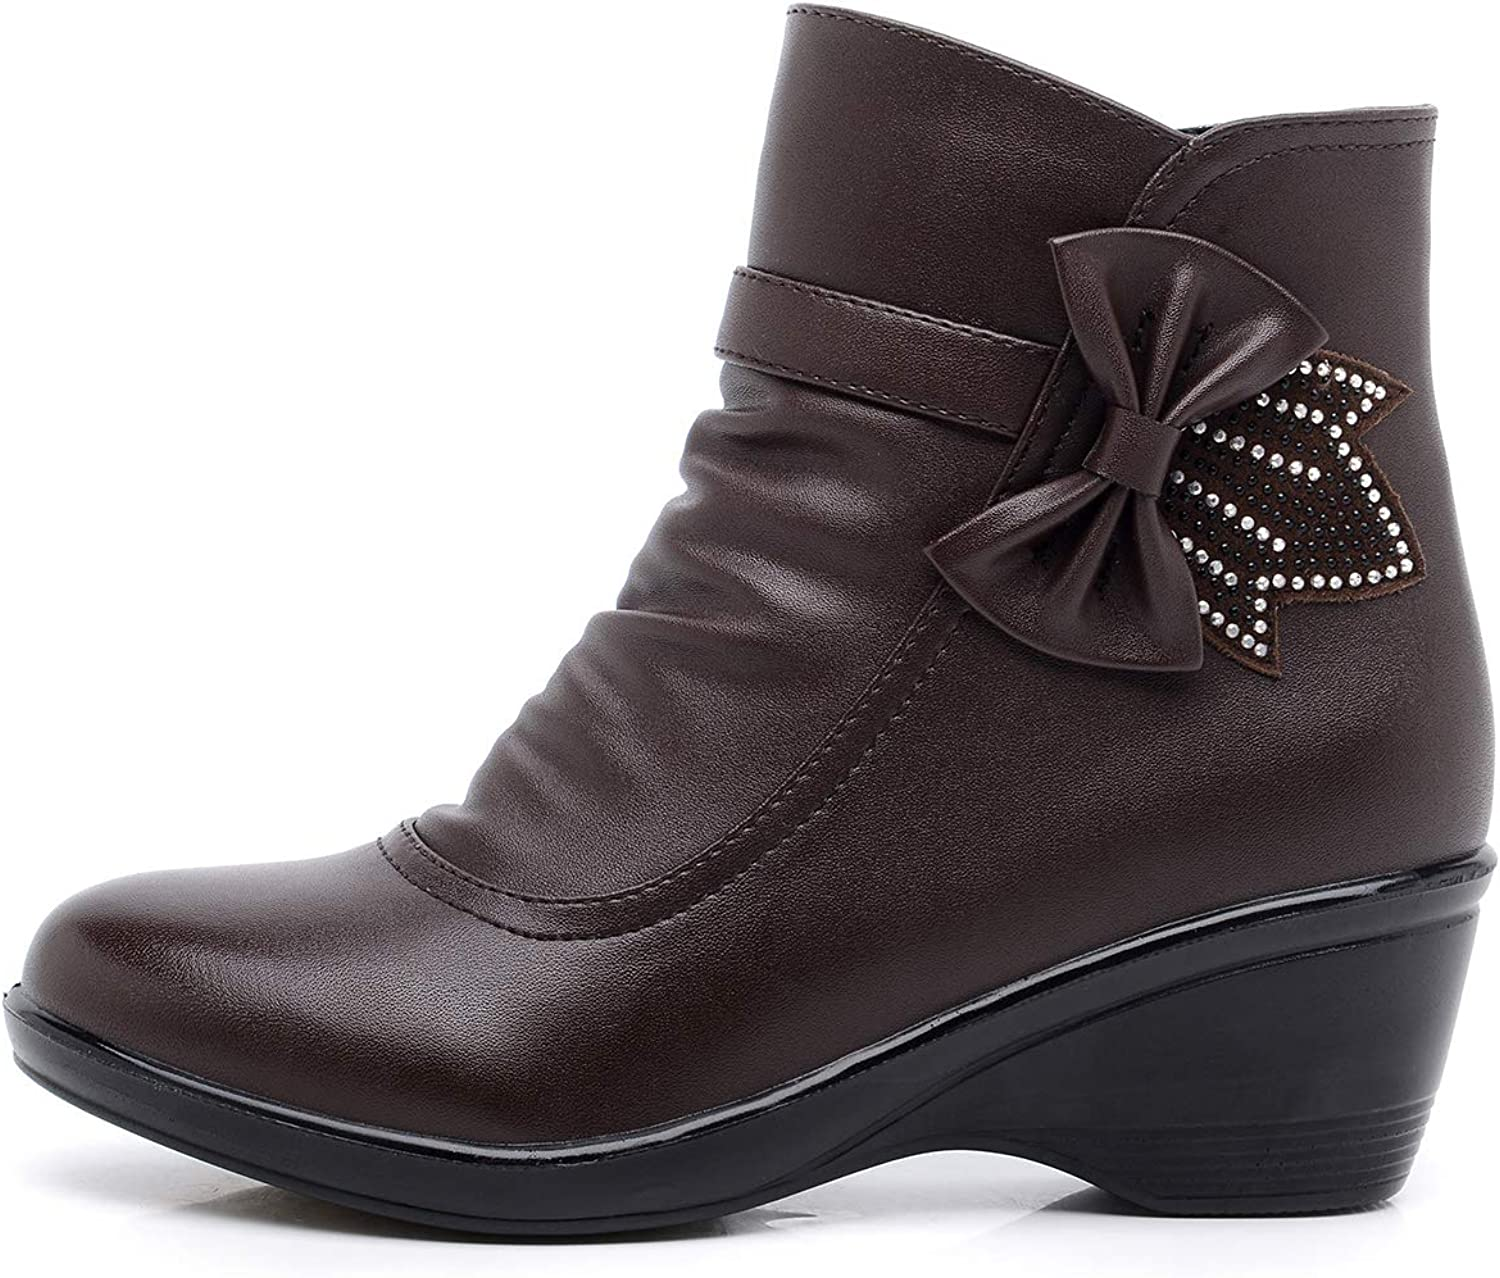 Attain Sunshine Ltd Butterfly Knot Women Boots Waterproof Ankle Boots Plush Winter Warm shoes Female Leather Boot Ladies